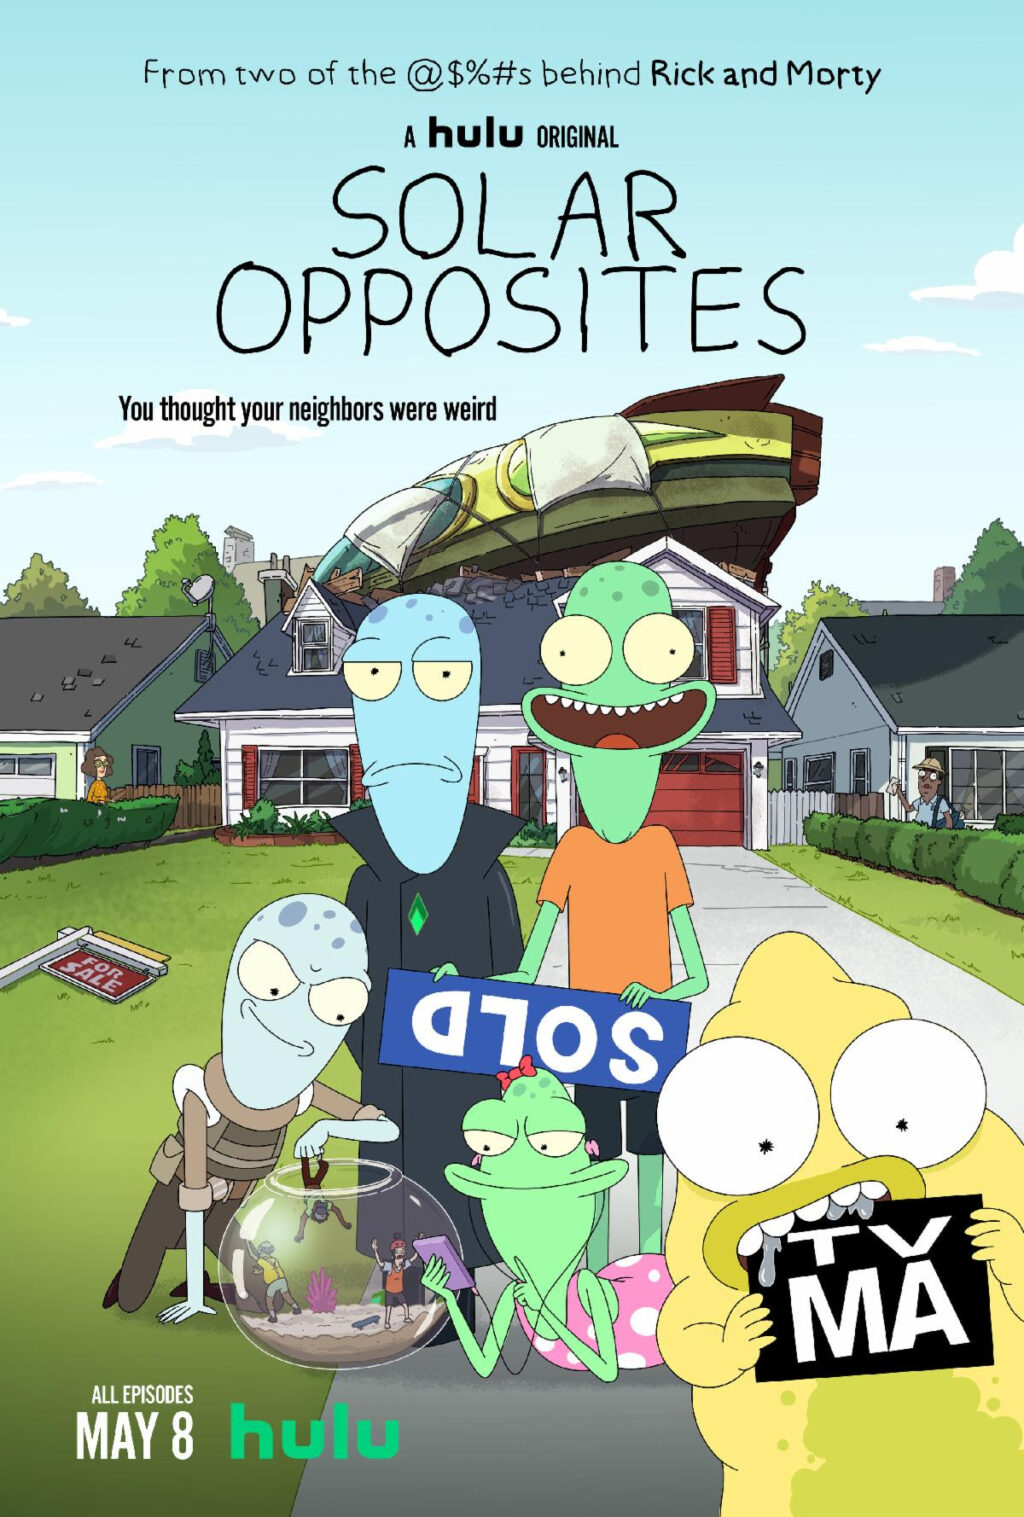 Solar Opposites Poster 1024x1517 - Trailer: Animated Series SOLAR OPPOSITES from RICK & MORTY Co-Creator